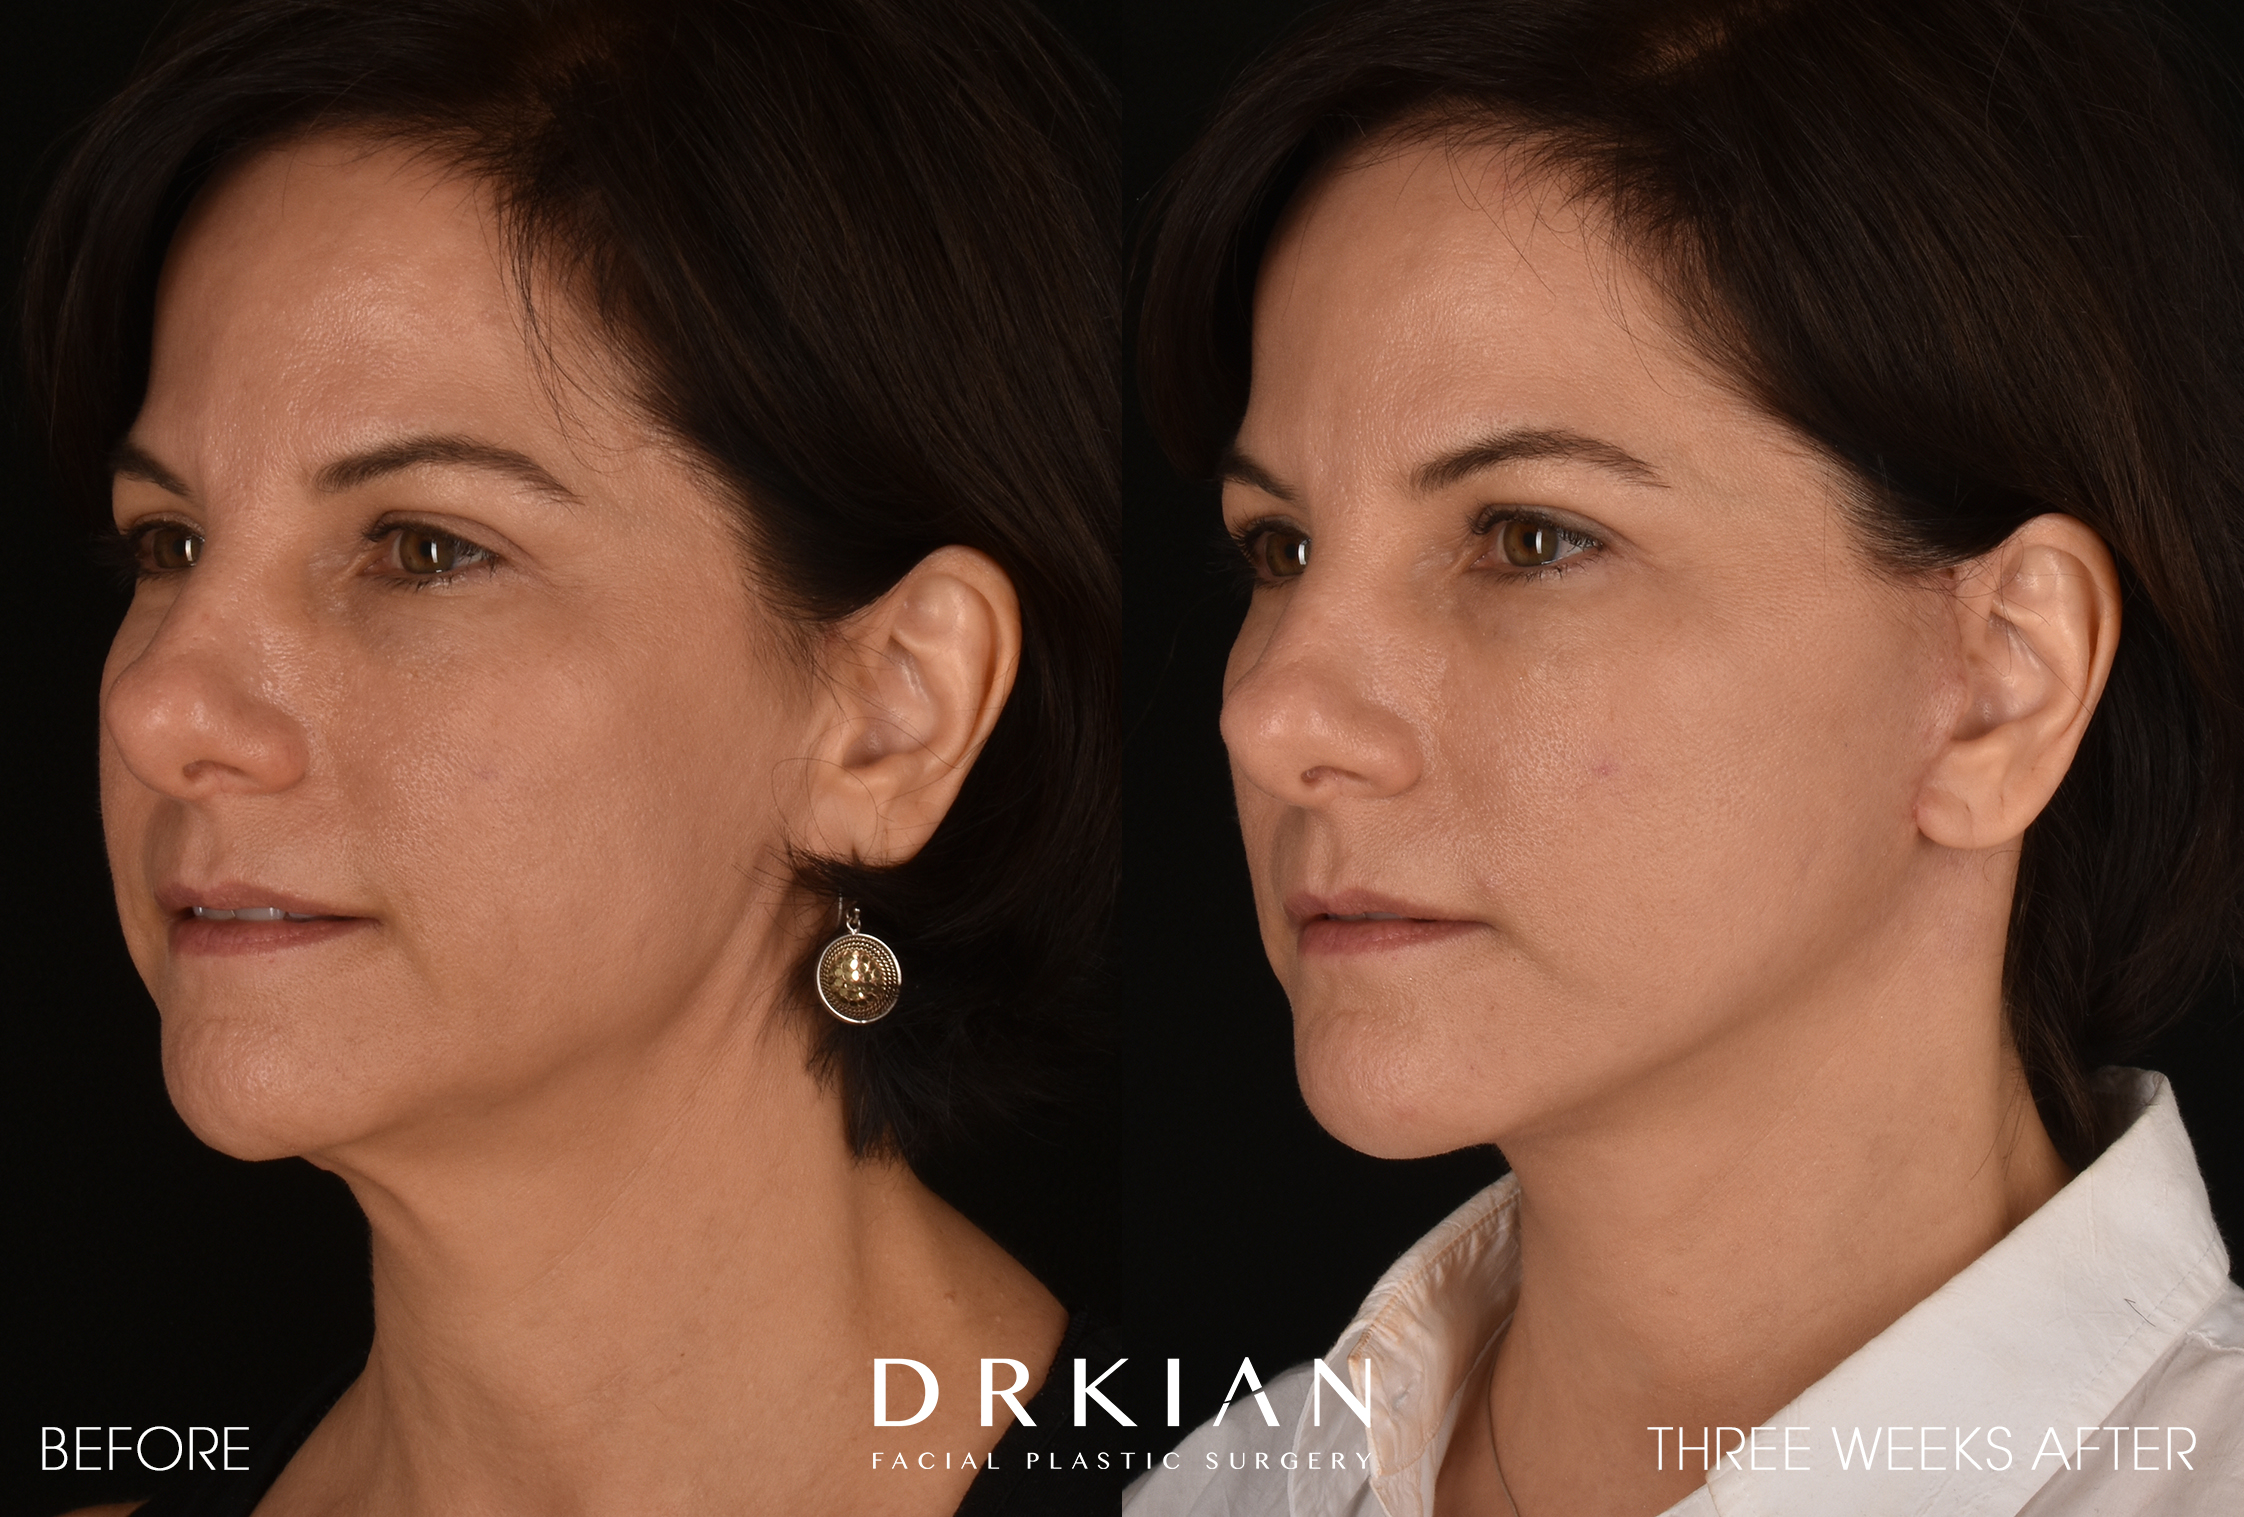 Micro Neck Lift Results at 3 weeks